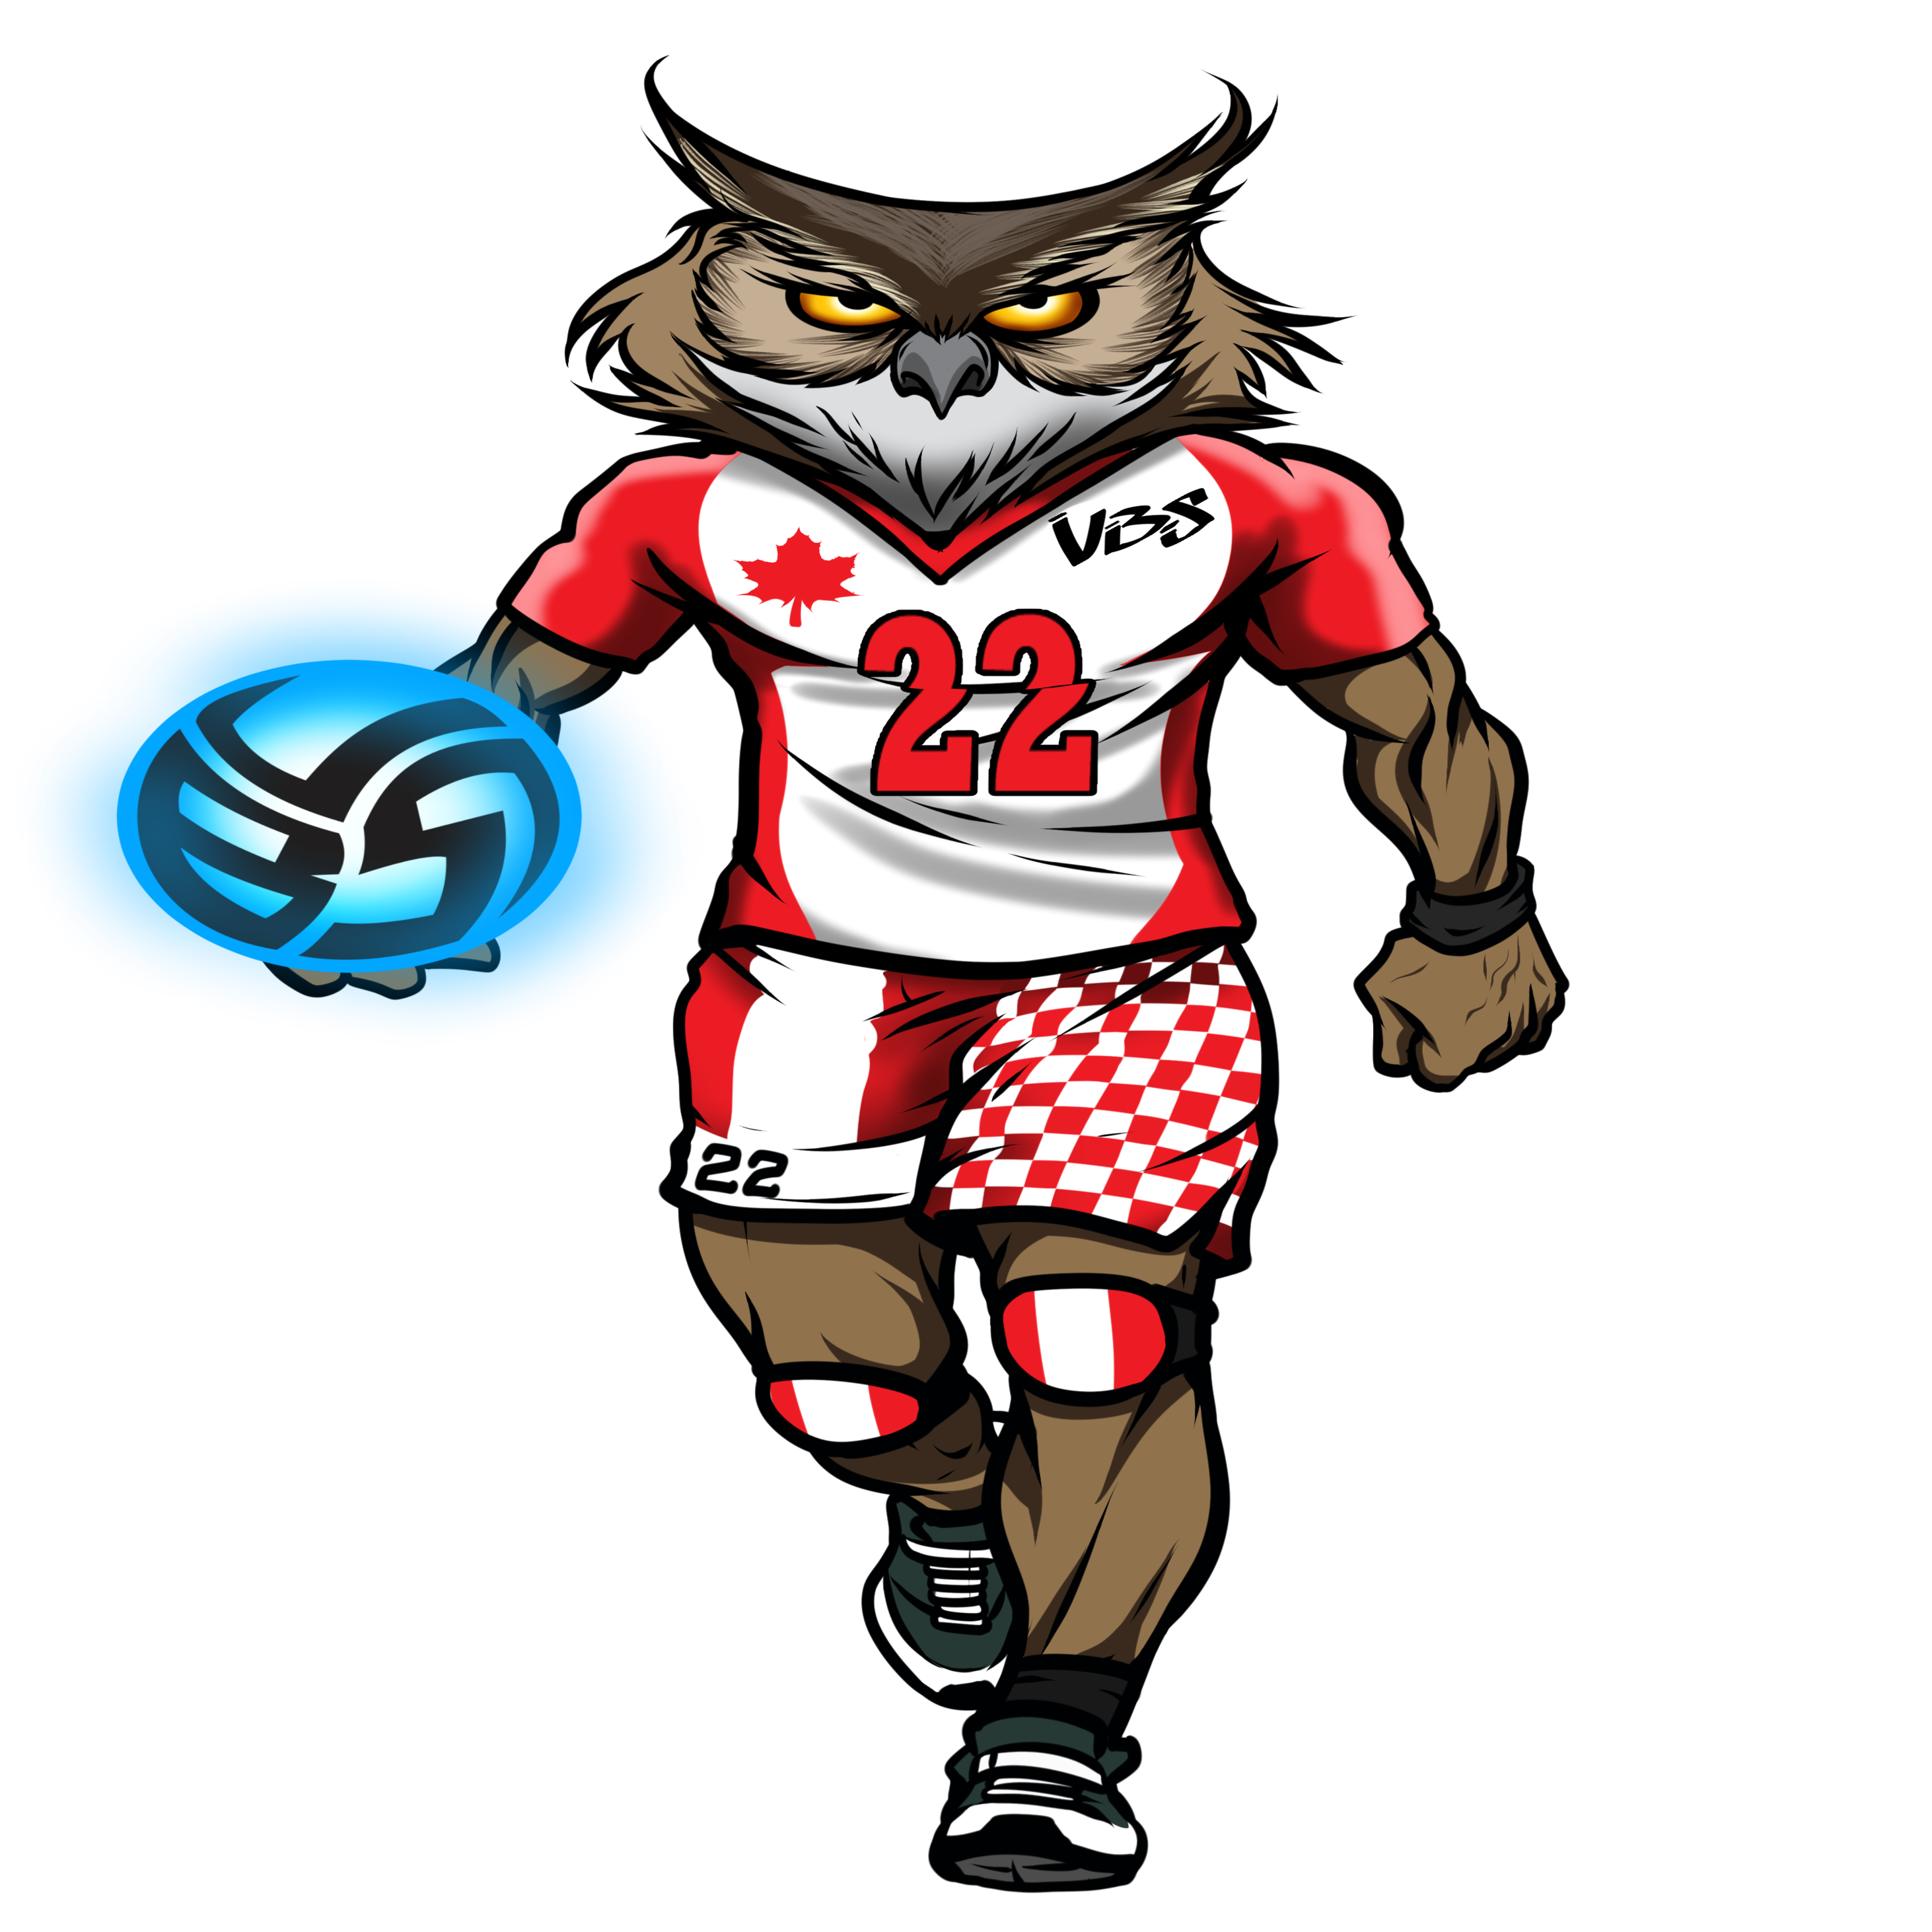 Animal T Shirt Ideas: Meet Ollie the Volleybragswag Owl, opposite hitter in his Canada flag inspired volleyball uniform. Volleyball Shirts available on Etsy!